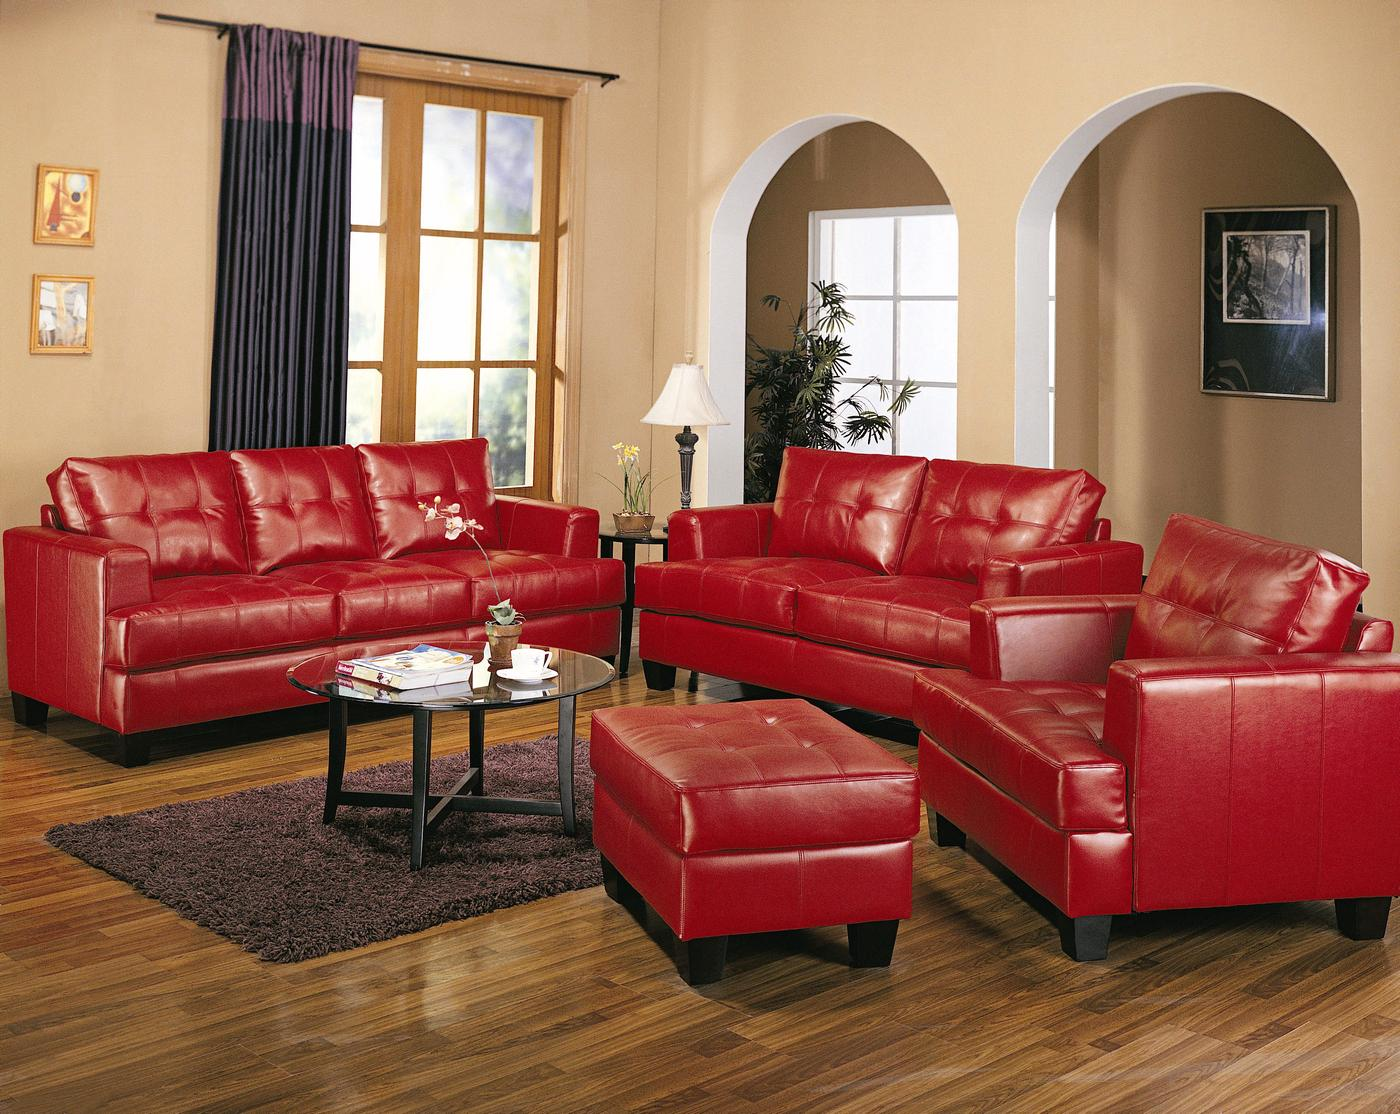 Samuel red bonded leather sofa and love seat living room set - Leather furniture for small living room ...